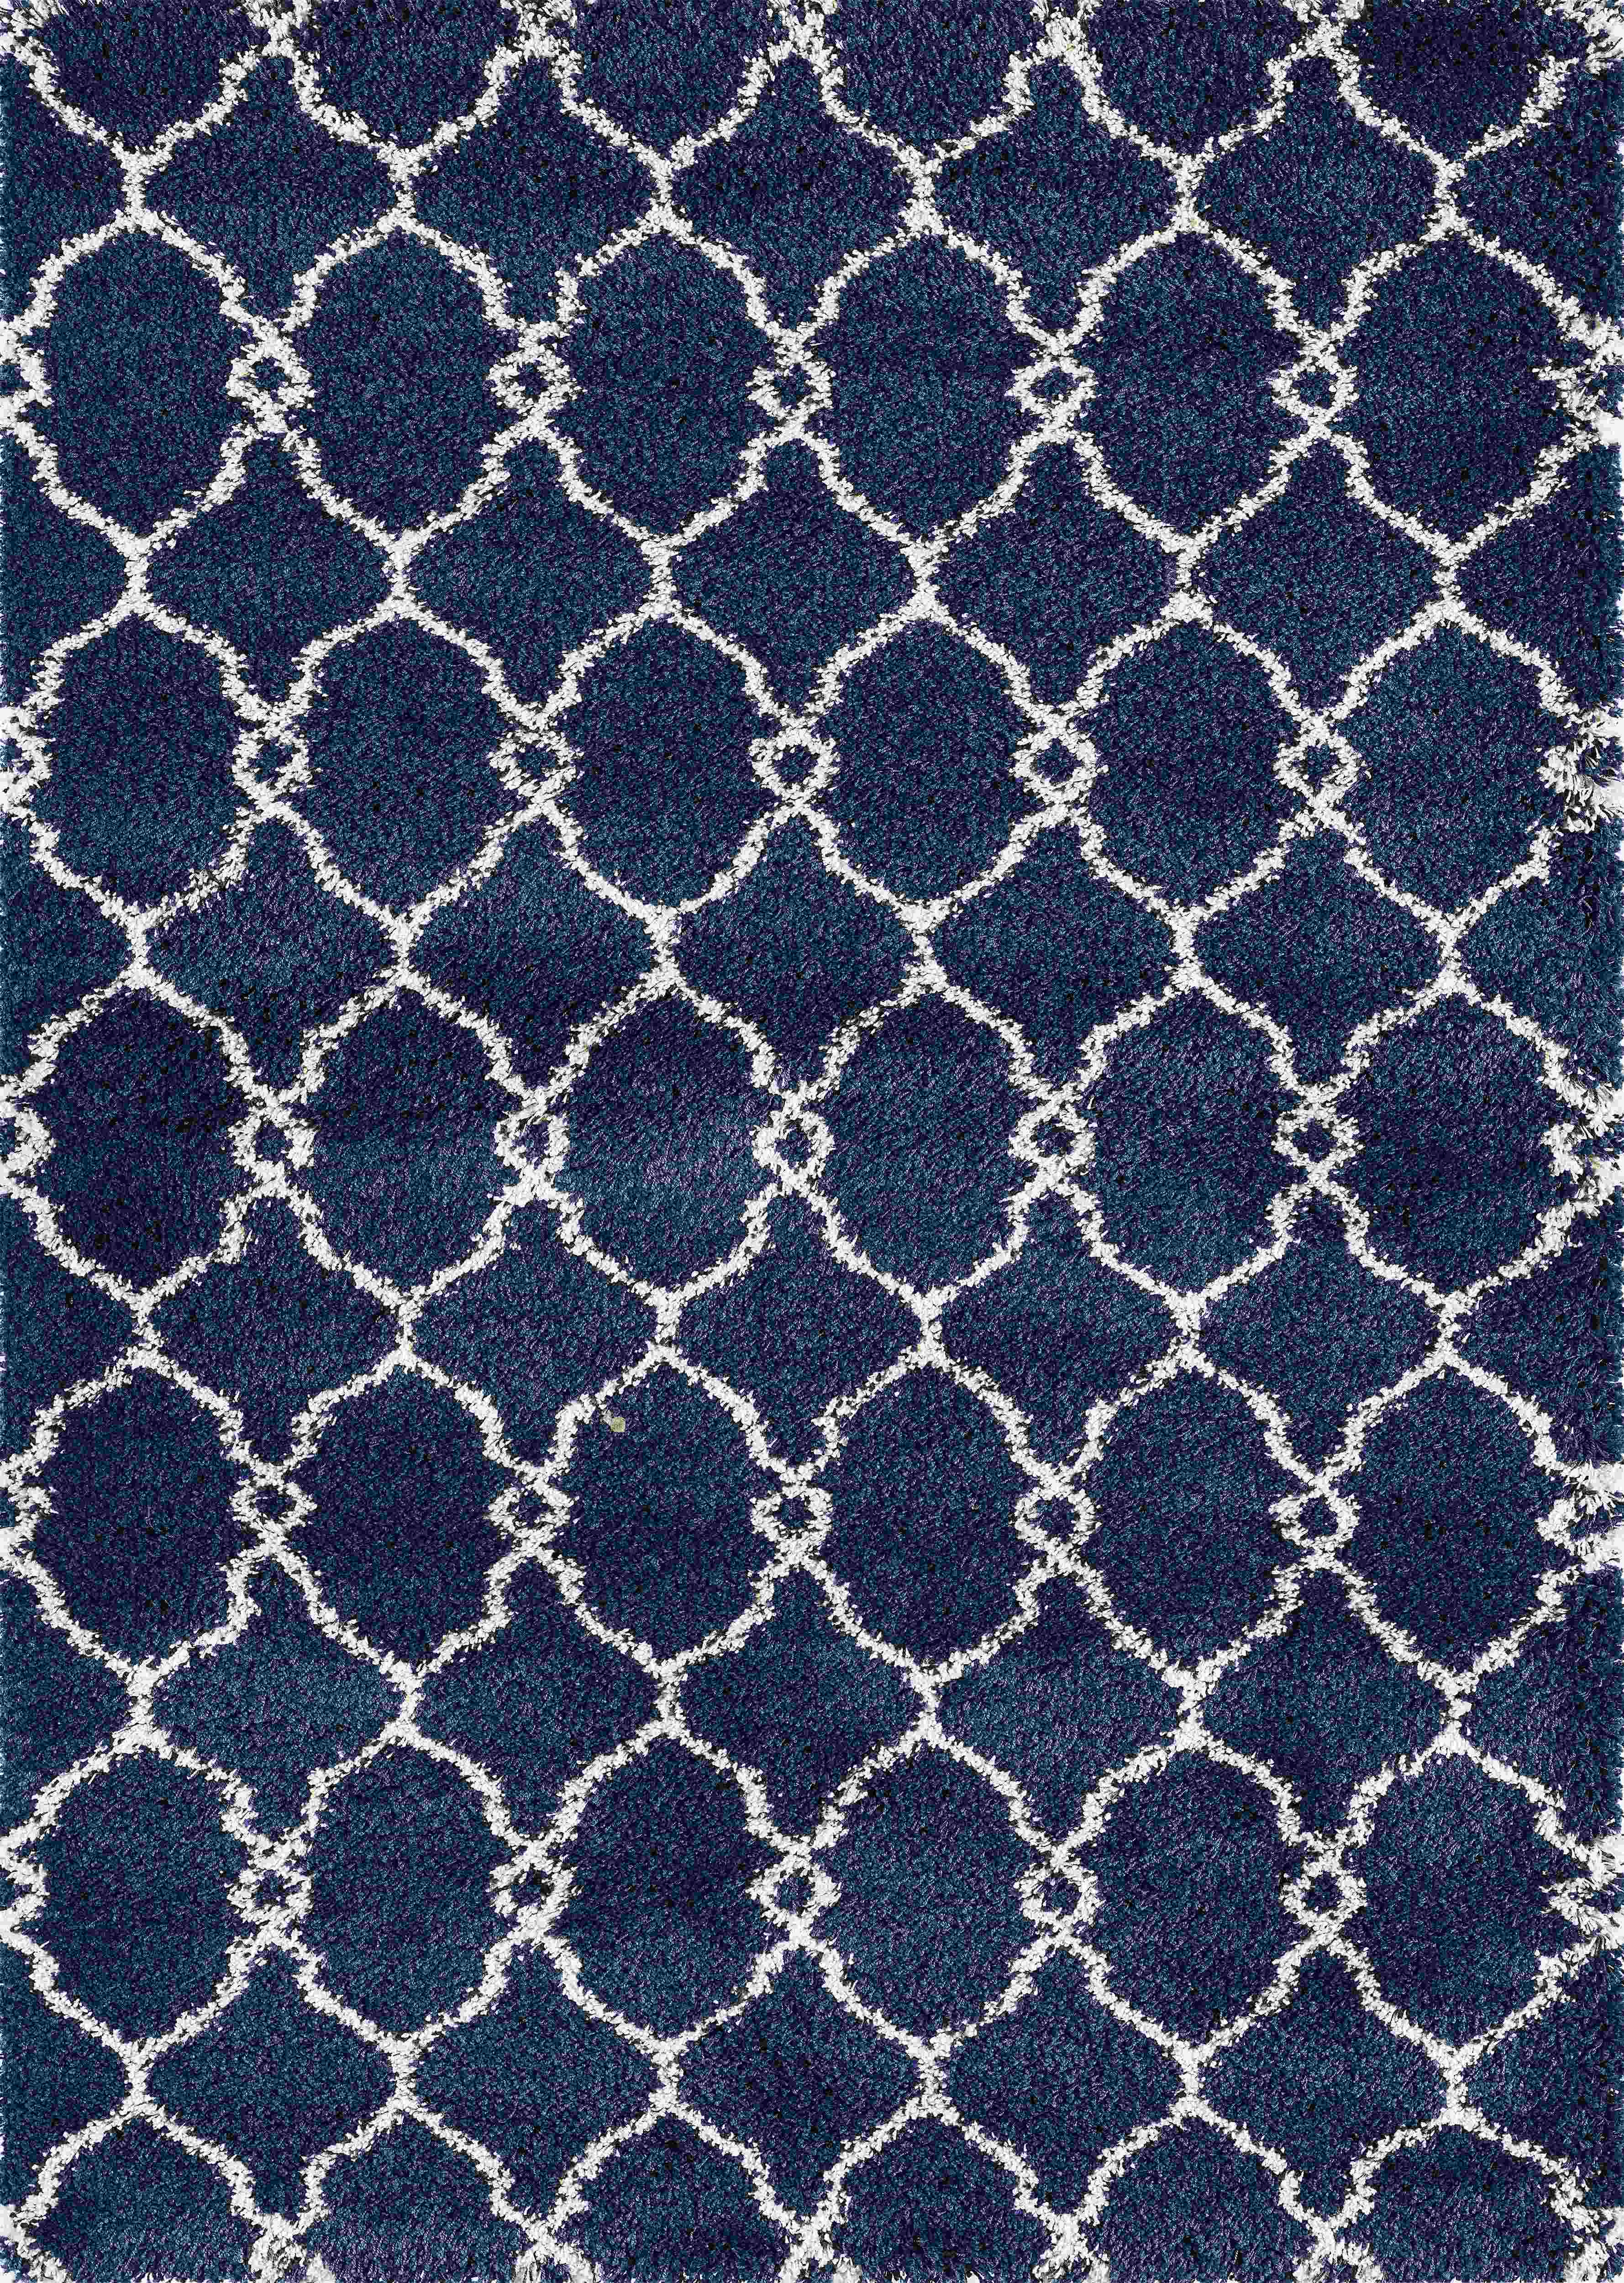 Dynamic Rugs Passion Geometric Ink 6201 Area Rug